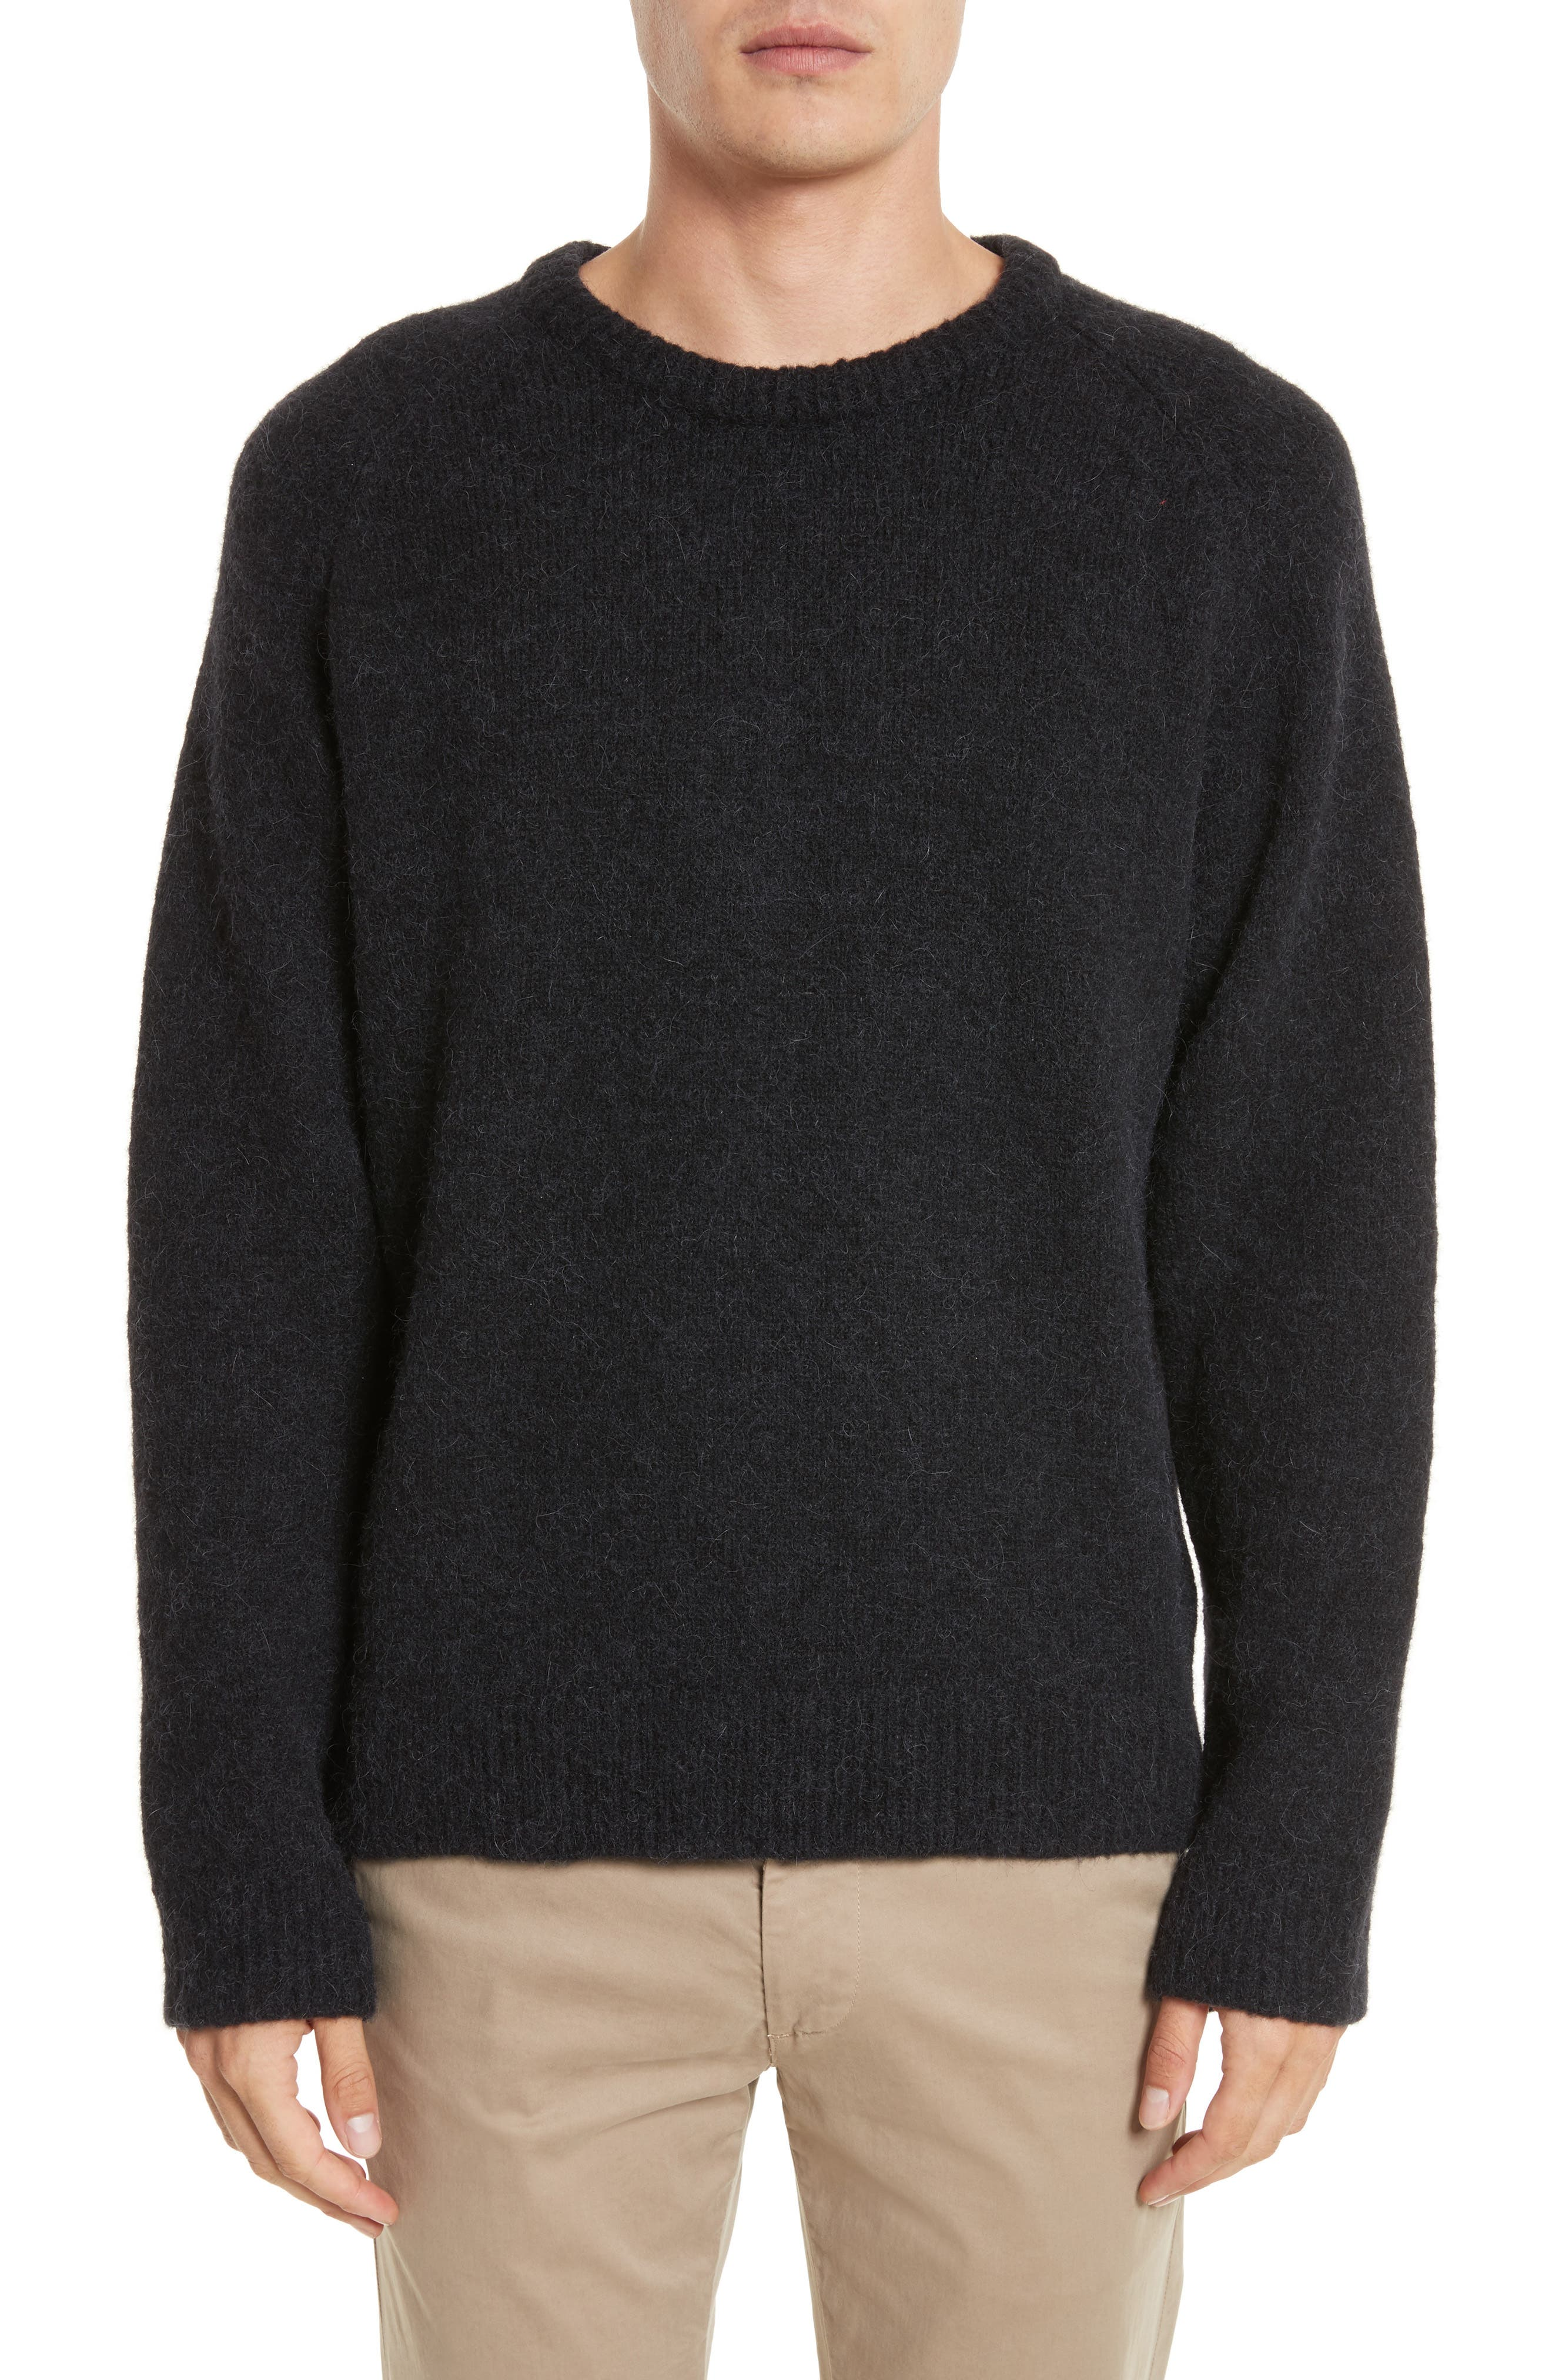 Wool Blend Crewneck Sweater,                         Main,                         color, Black